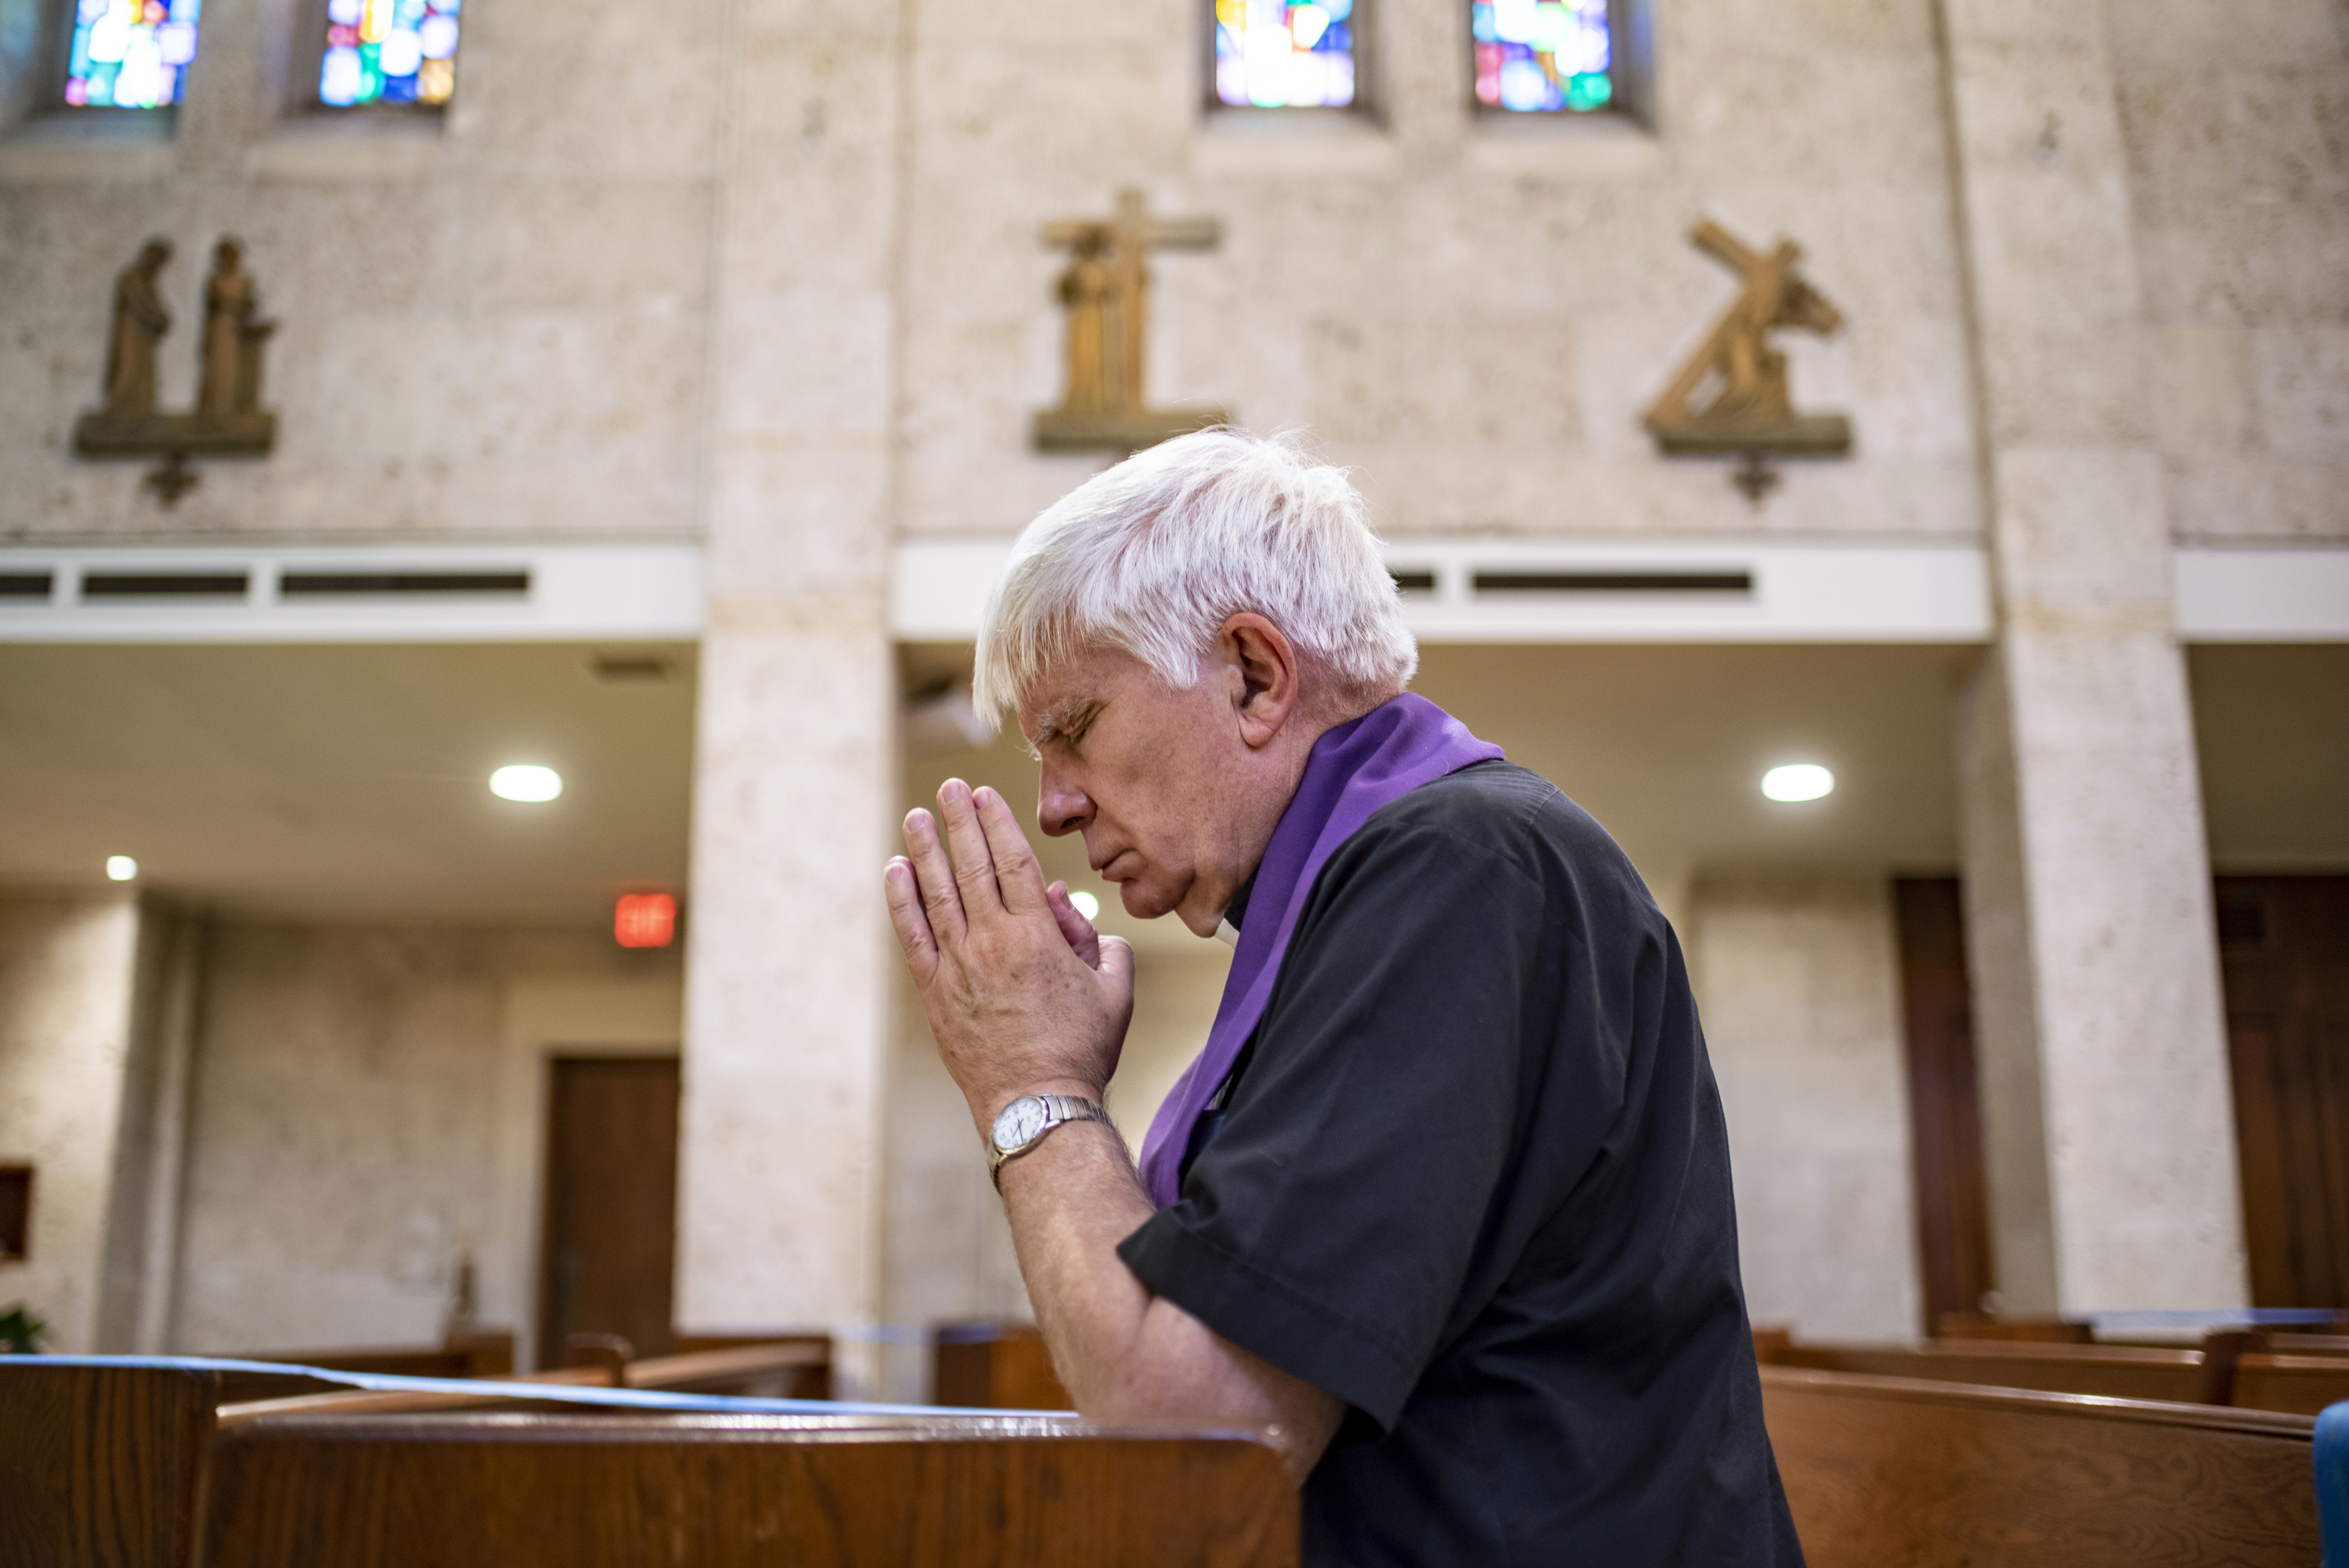 """Father Bruce Nieli prays at St. Austin Catholic Parish in Austin, Texas, on Thursday, Sept. 9, 2021. Father Nieli was at New York's ground zero shortly after the Sept. 11 attacks when officials made the largest discovery of bodies since the attack. Through his experience, Father Nieli came to better develop a """"spirit of reconciliation and peace."""""""